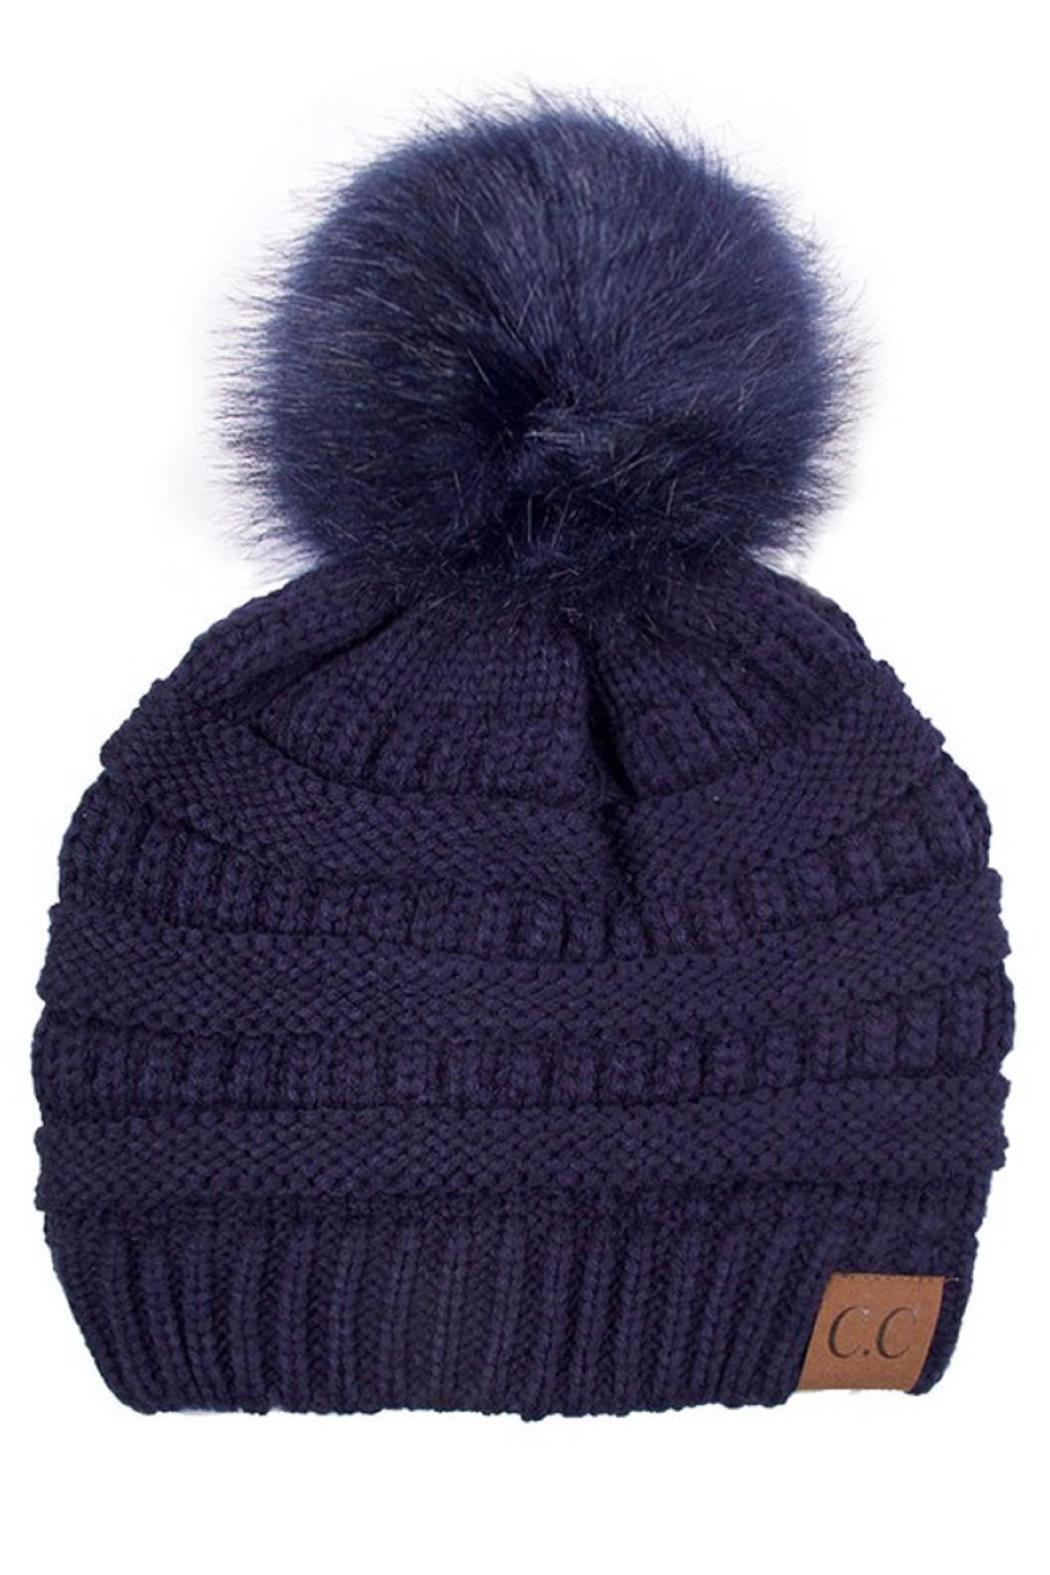 C C Beanie The Dani Hat From Minneapolis By Styletrolley